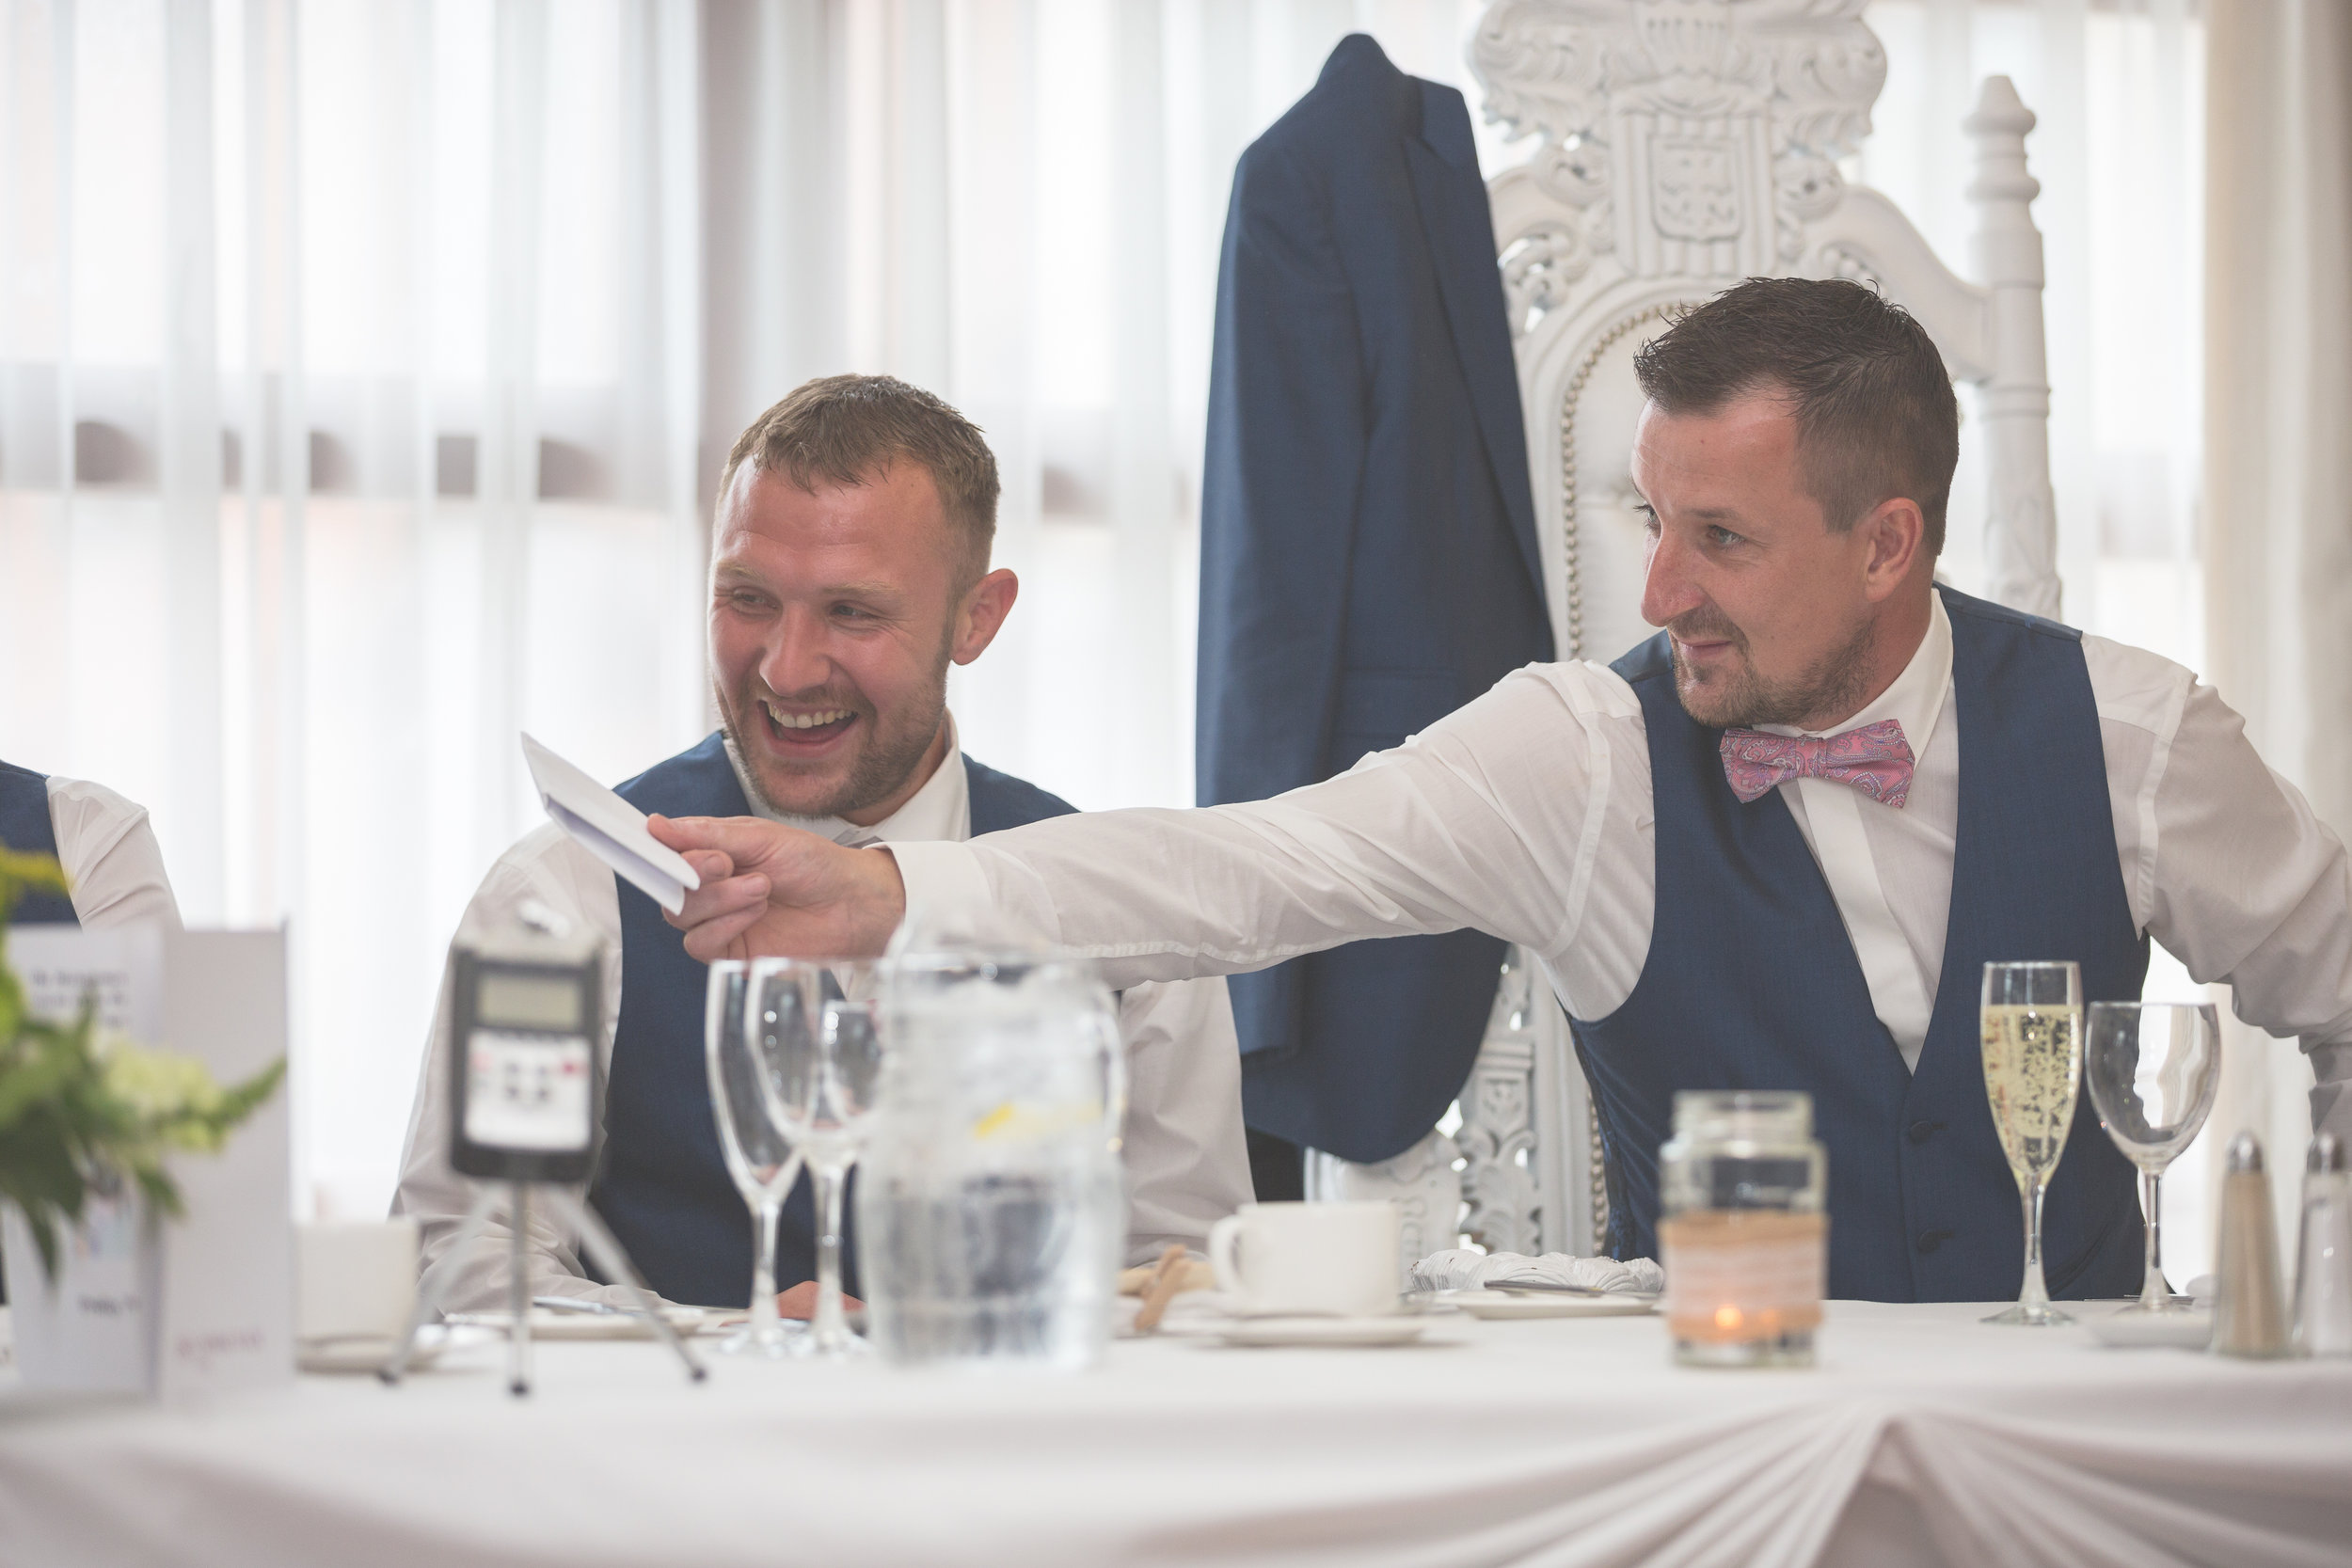 Antoinette & Stephen - Speeches | Brian McEwan Photography | Wedding Photographer Northern Ireland 14.jpg